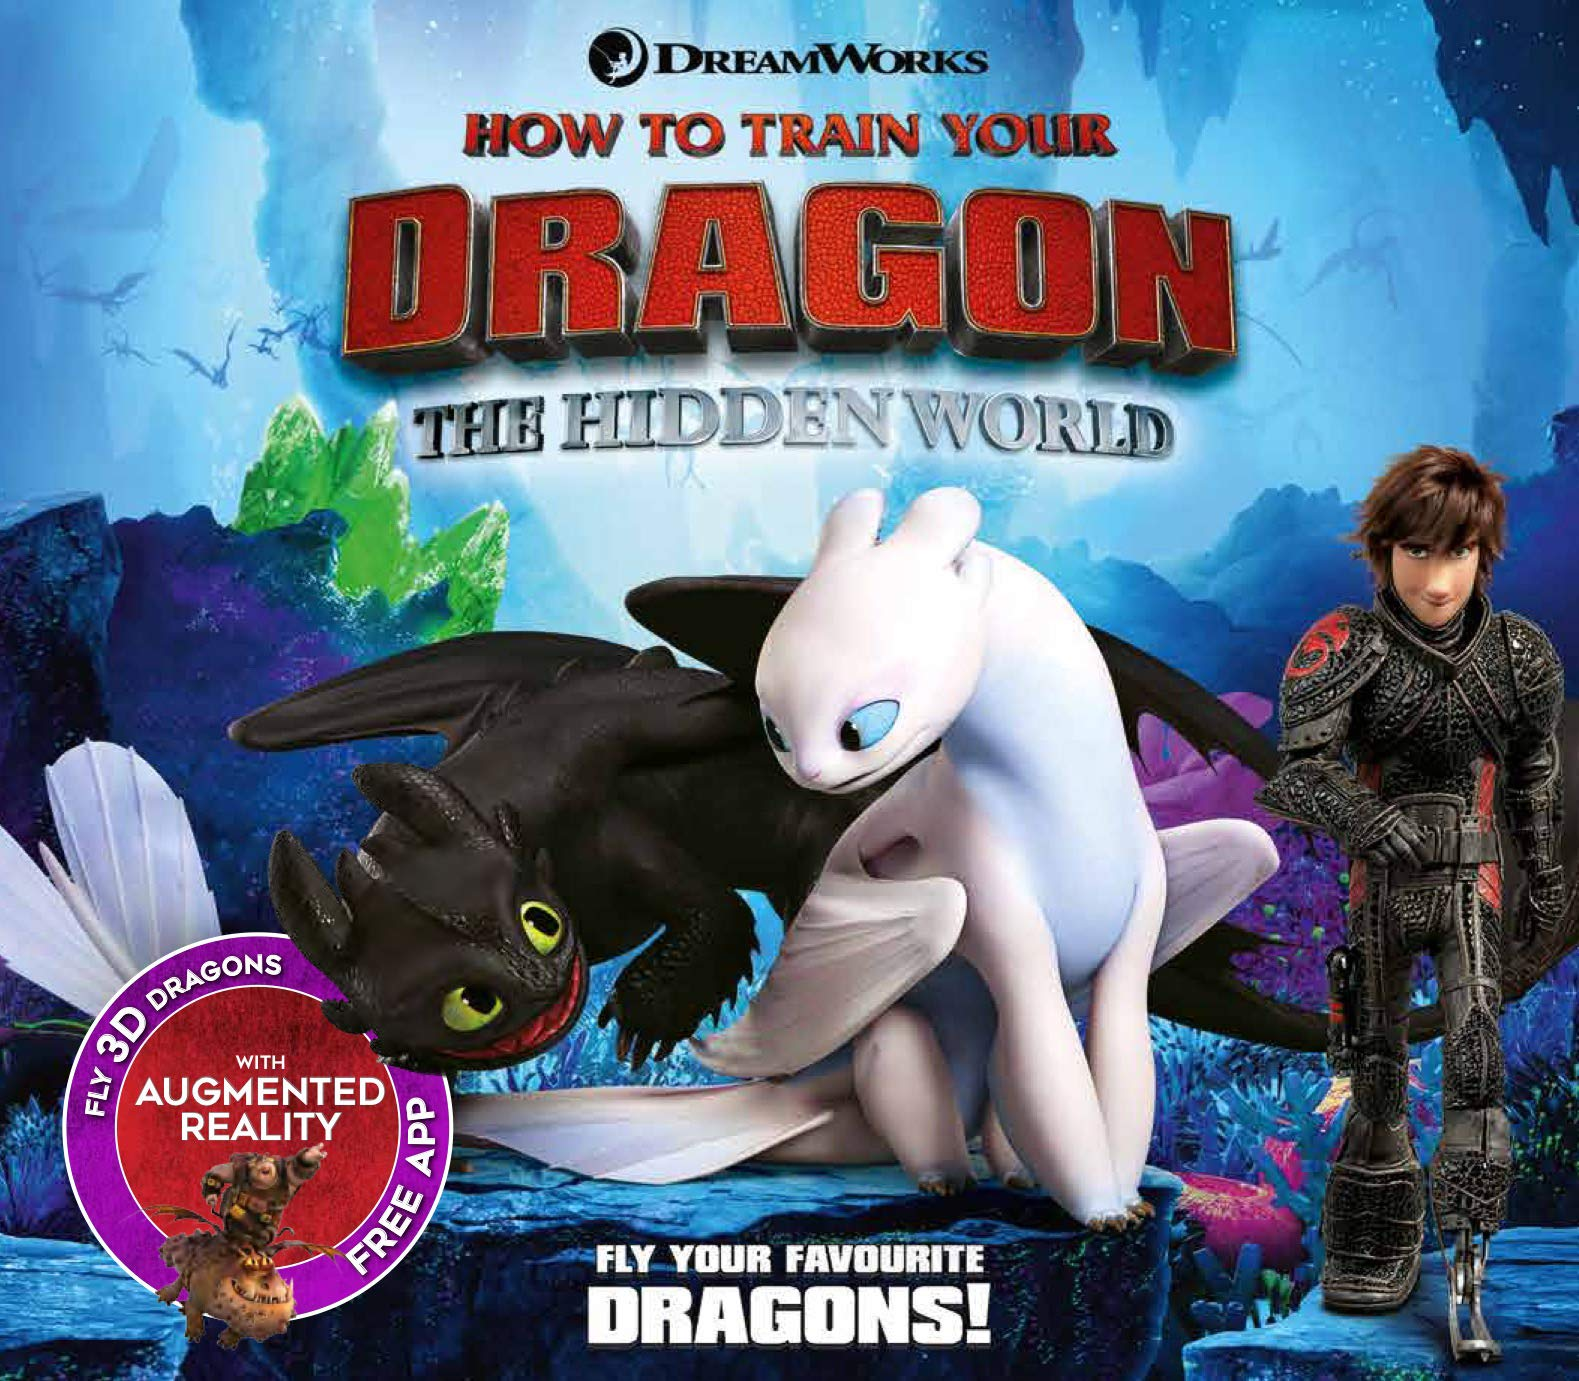 How to train your dragon 3 showtimes near me